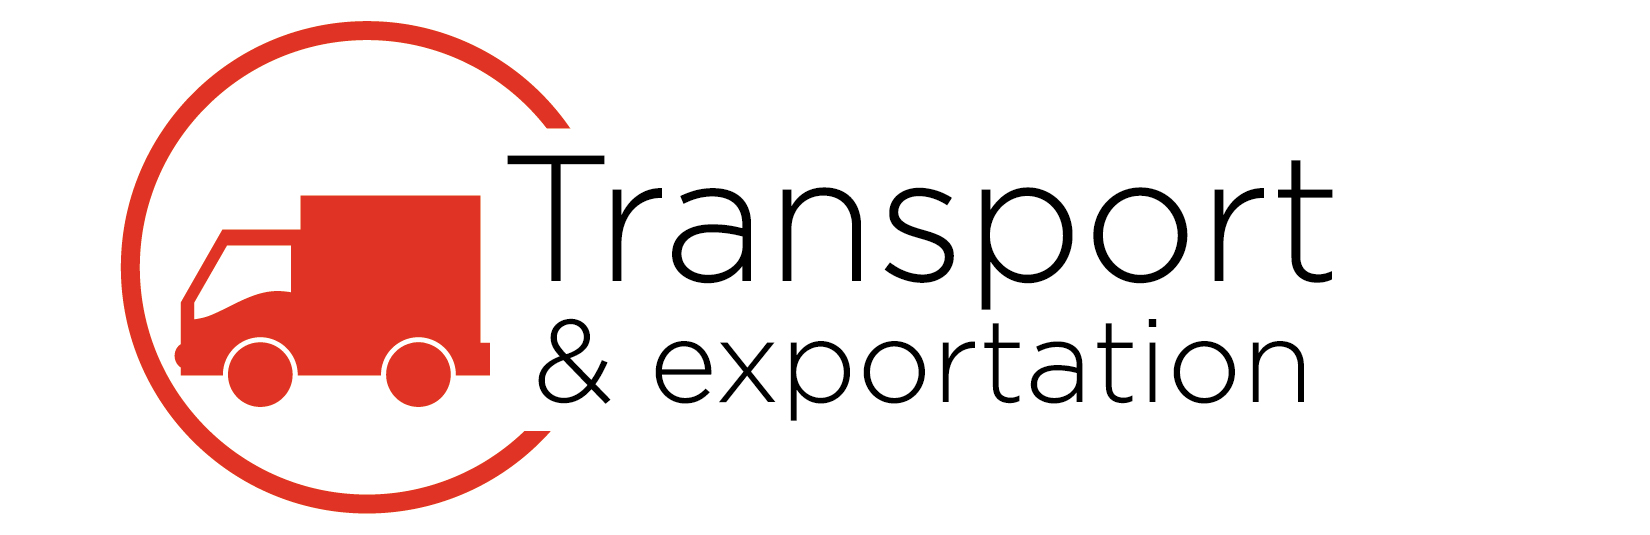 Icone_Transport